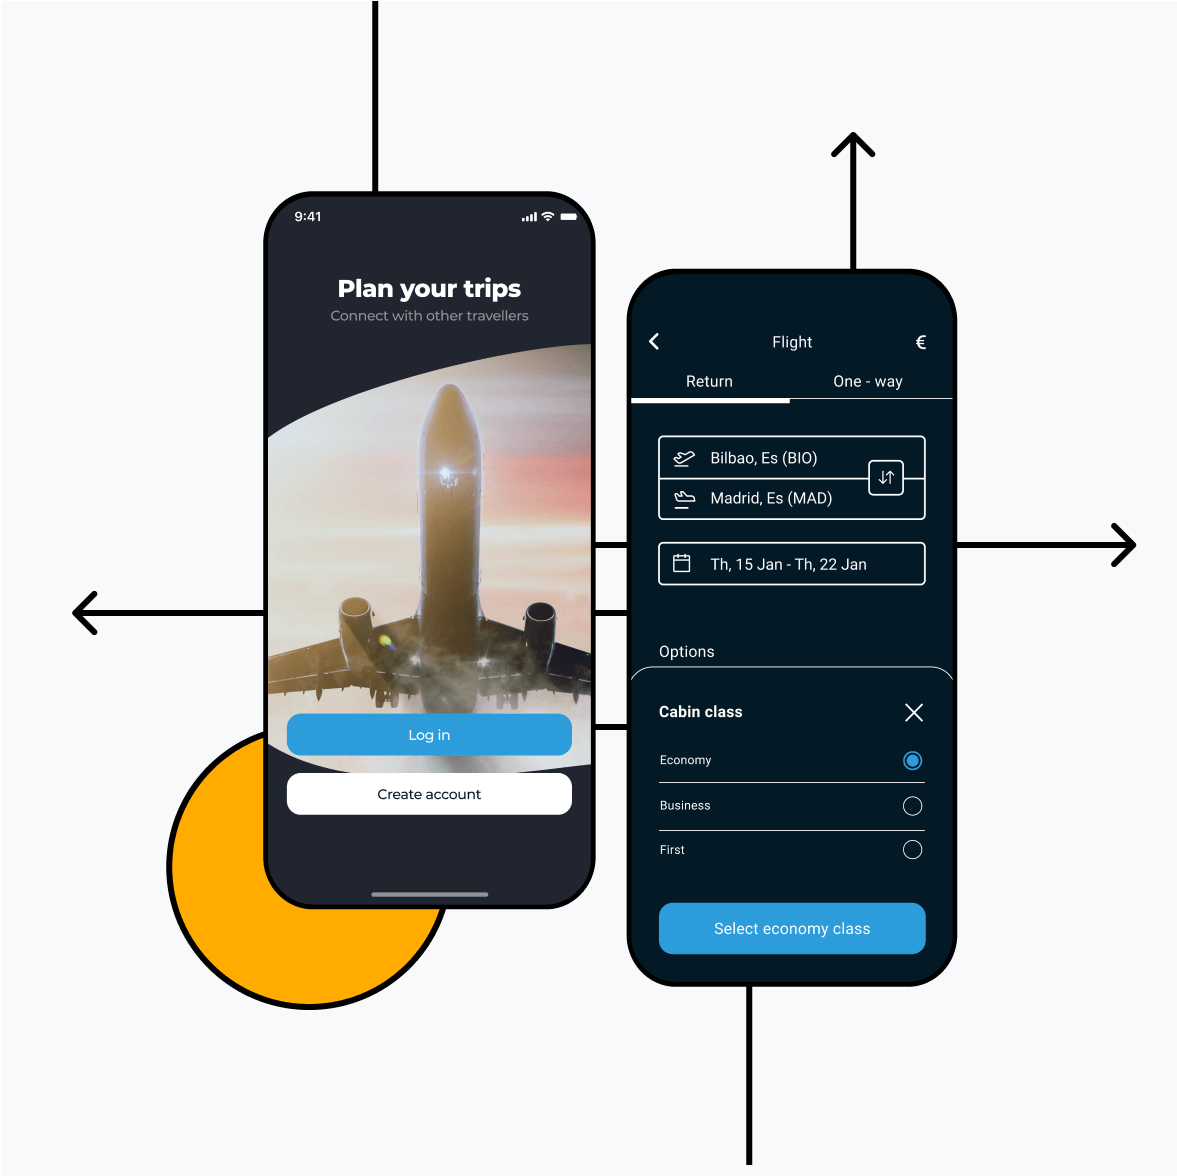 Itinerary app with login screen